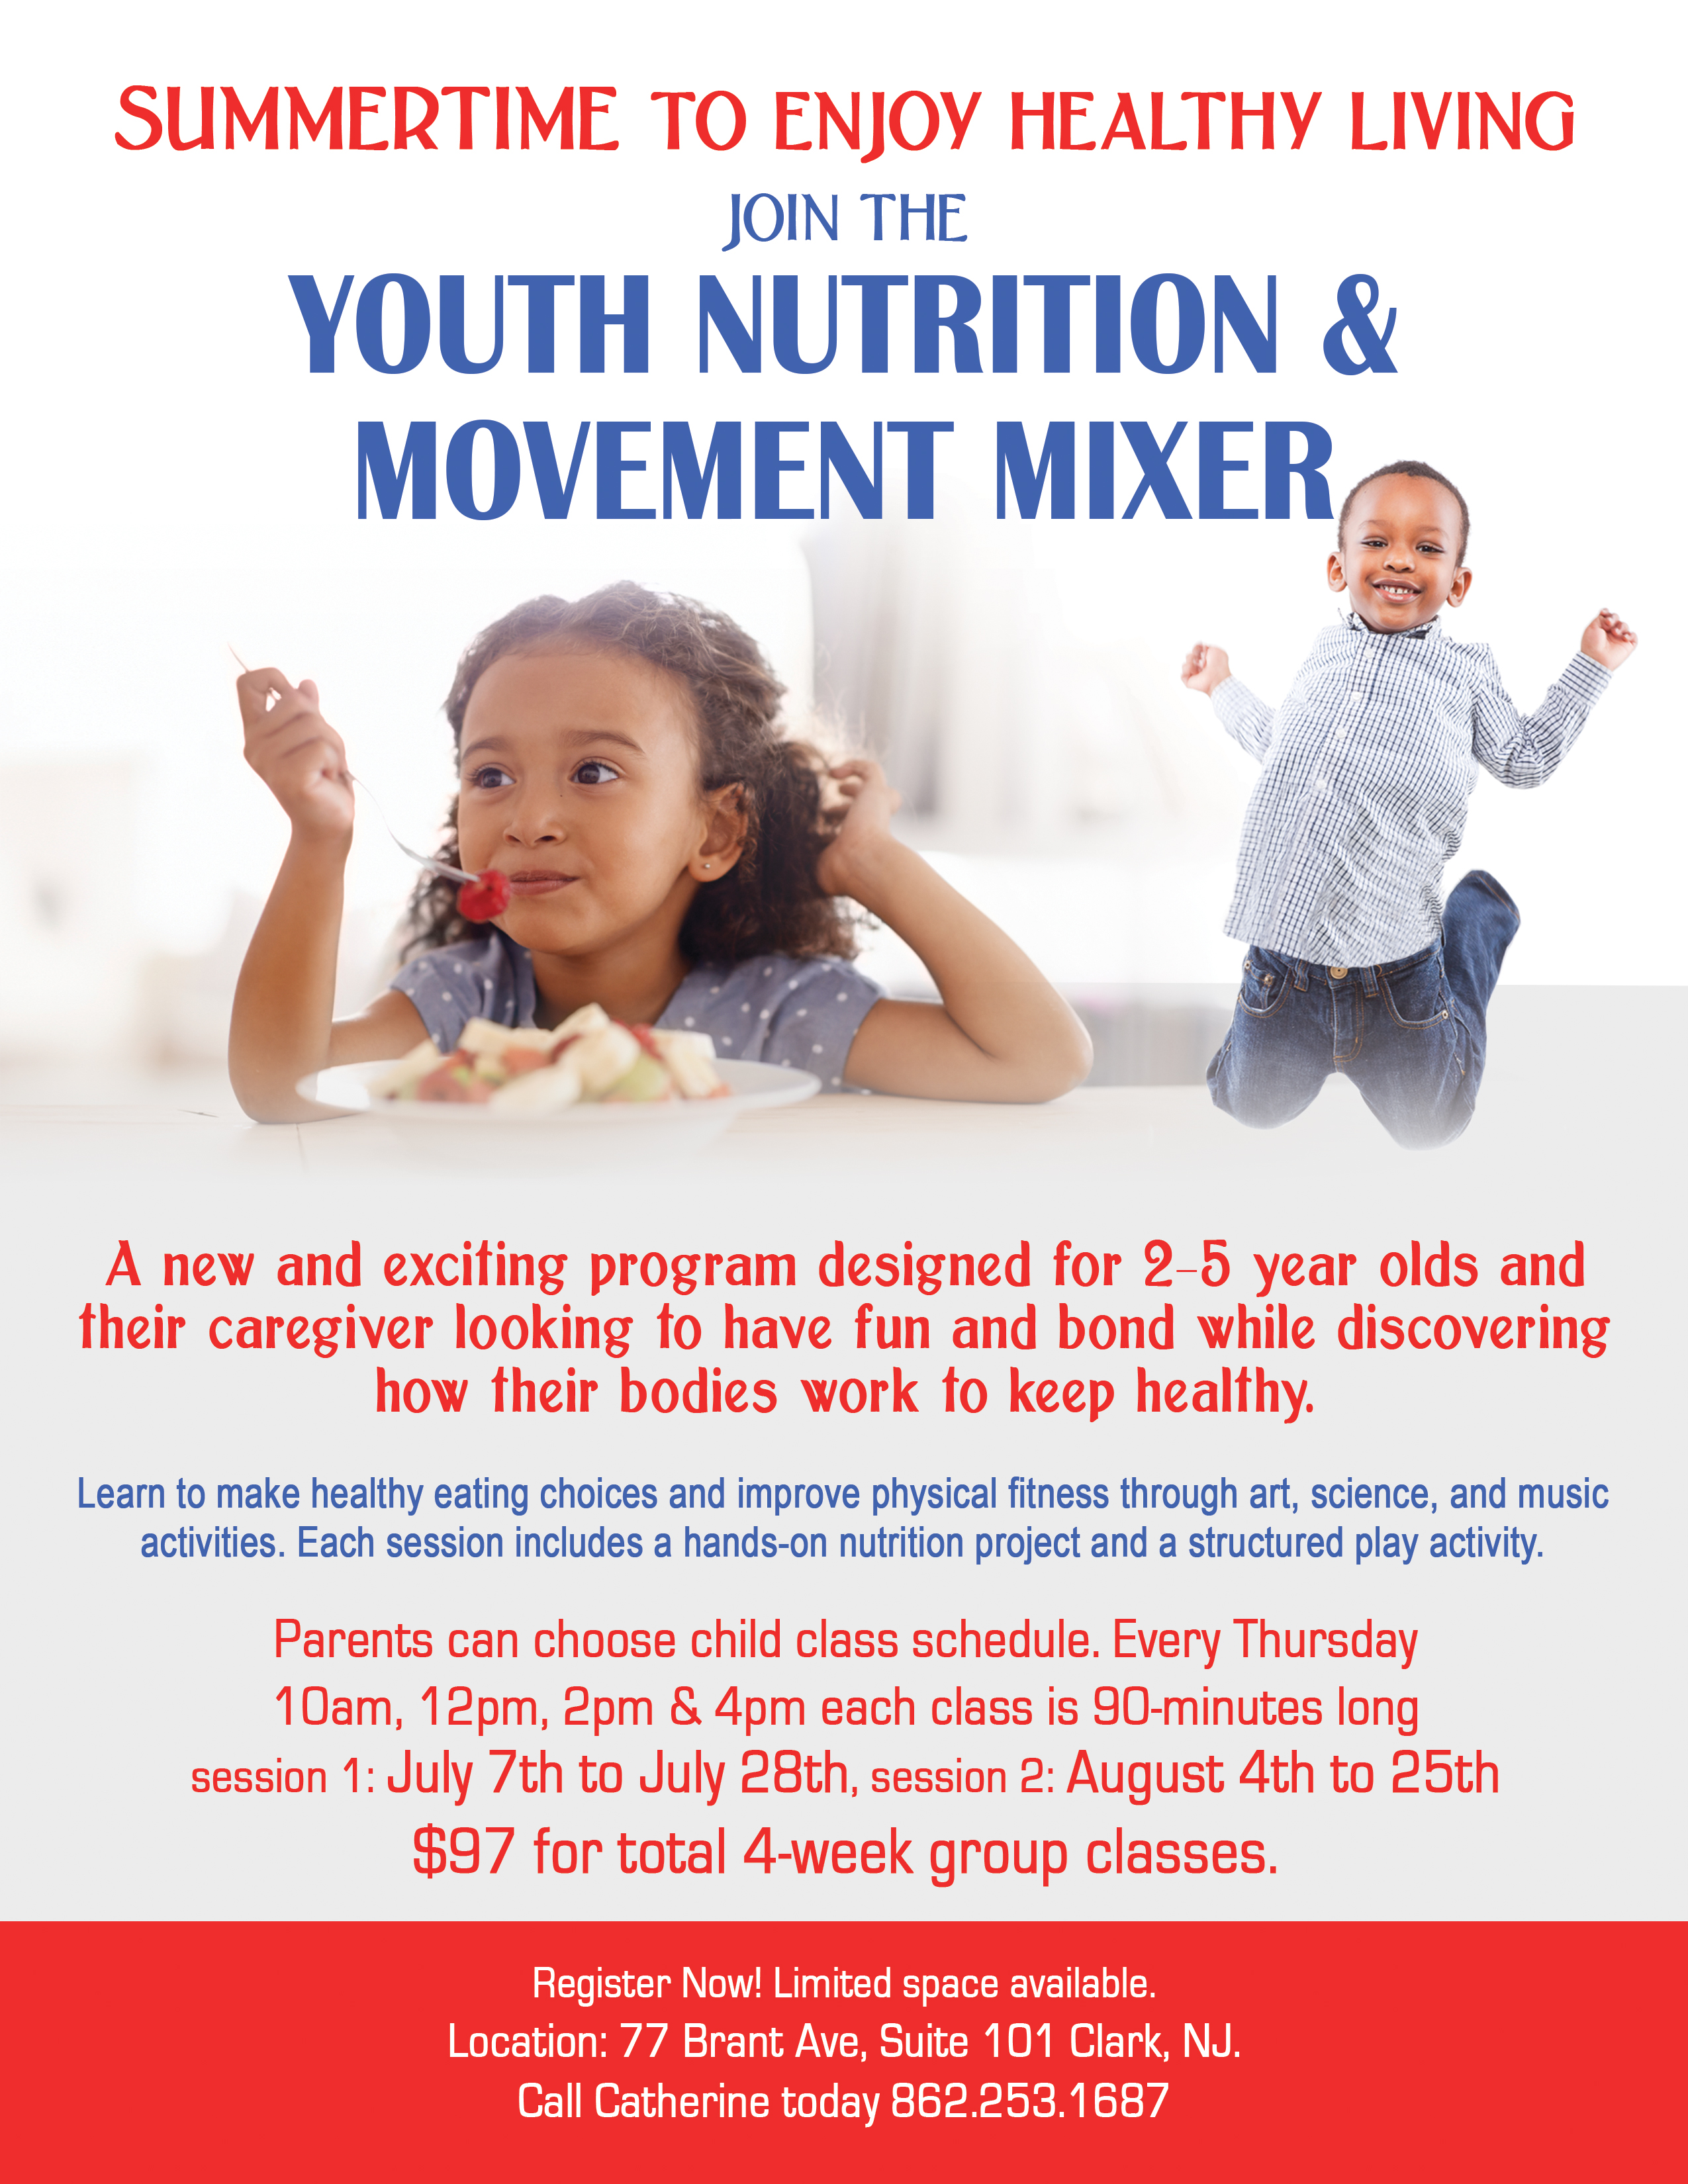 Youth Business Mixer ~ Youth nutrition and movement mixer in clark tapinto